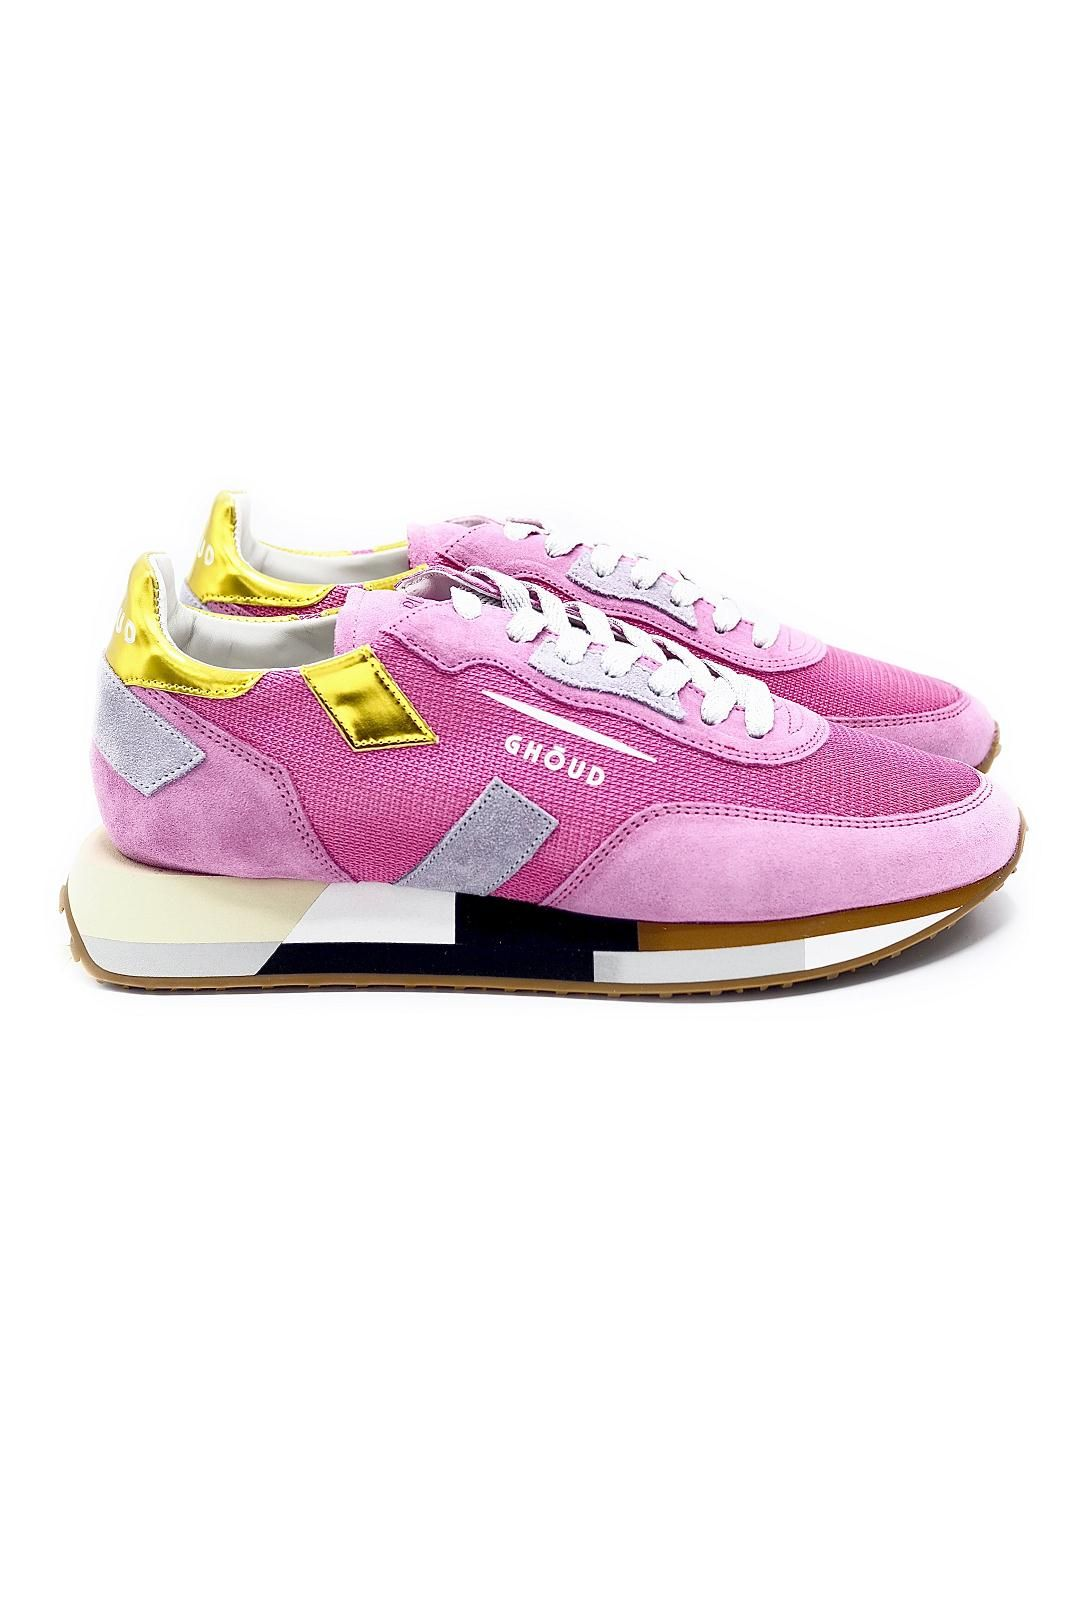 Ghoud basket bas Fuschia femmes (GHOUD-Runner semelle multi - RMLW MM09 Fushia + jaune) - Marine | Much more than shoes